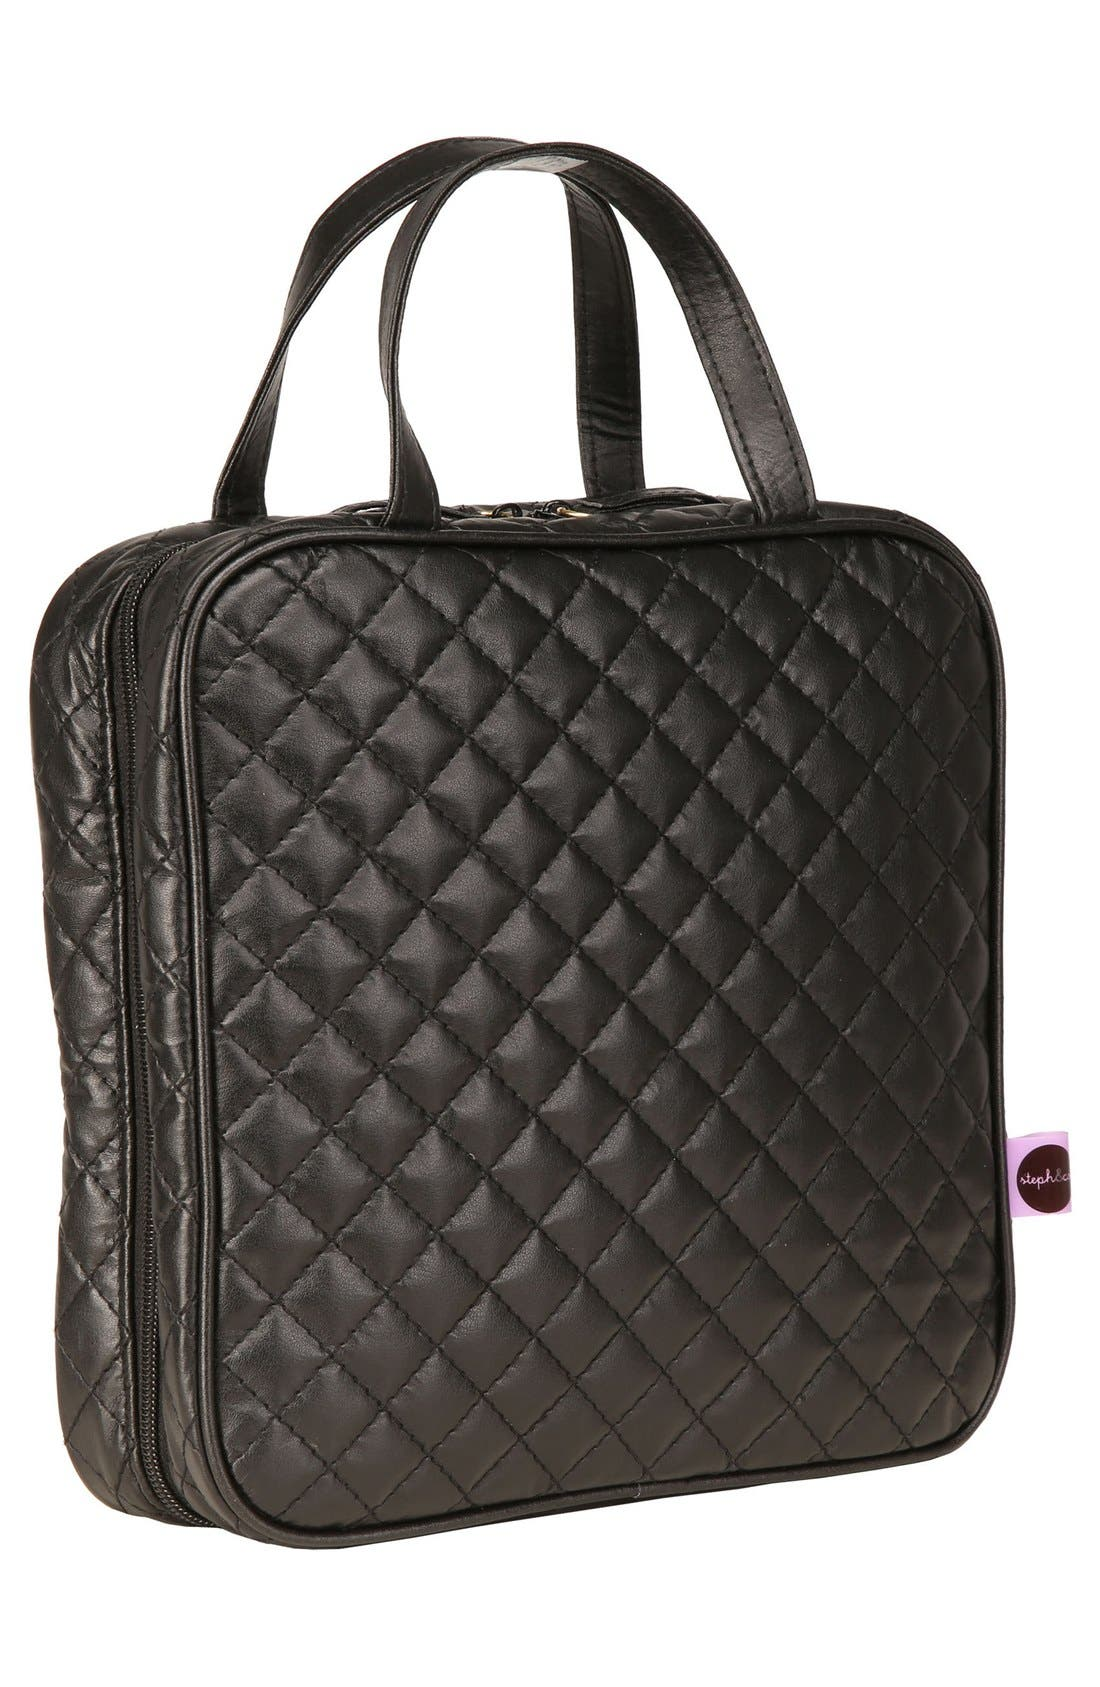 'Marissa' Black Quilted Cosmetics Case,                             Alternate thumbnail 3, color,                             000